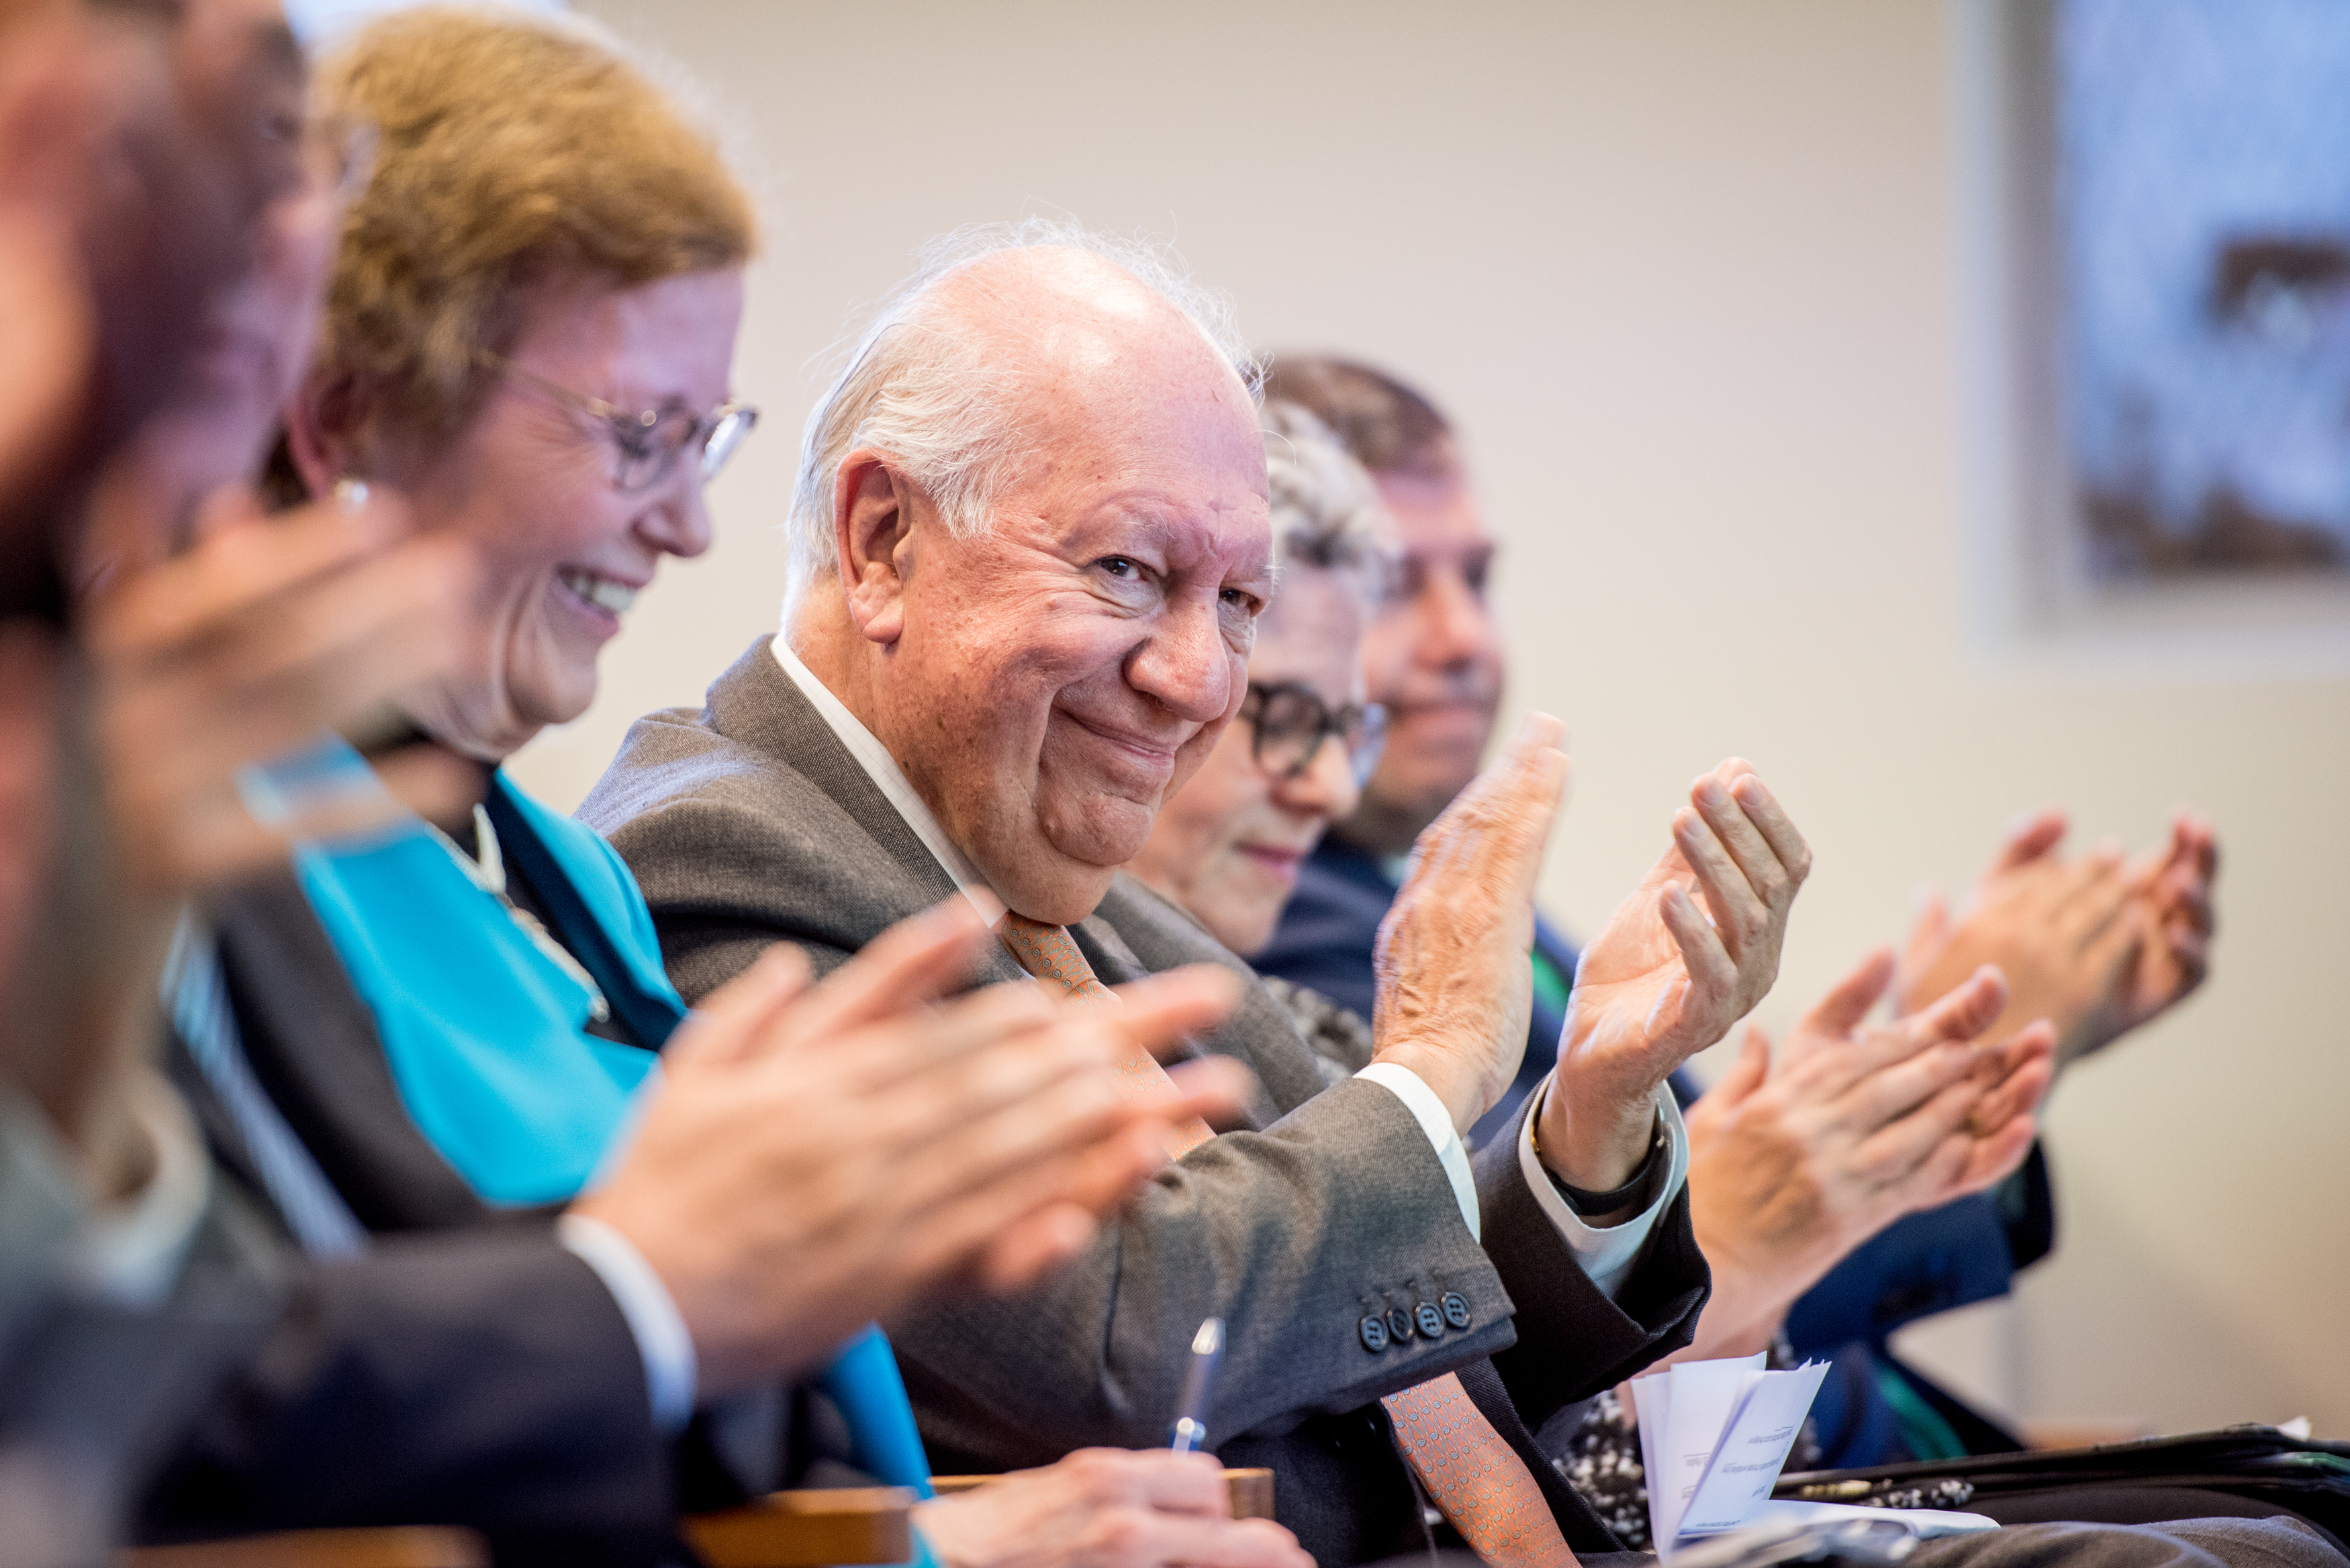 Mary Robinson, former president of Ireland, and Ricardo Lagos, former president of Chile